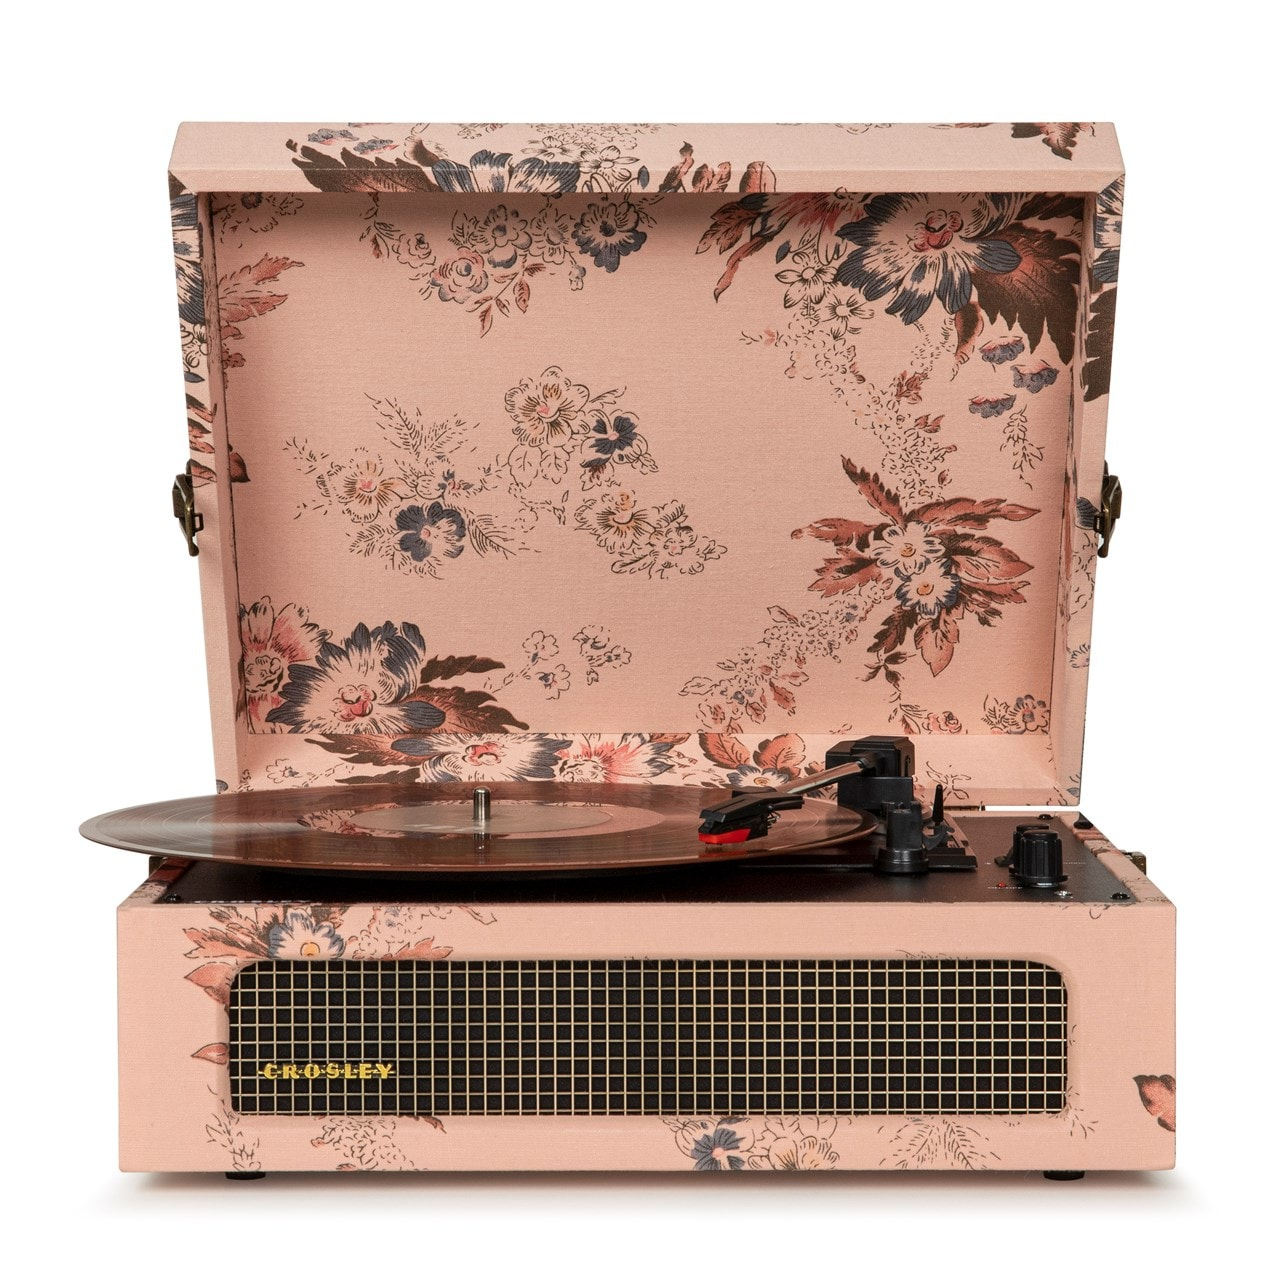 Crosley Voyager Floral Turntable - 1